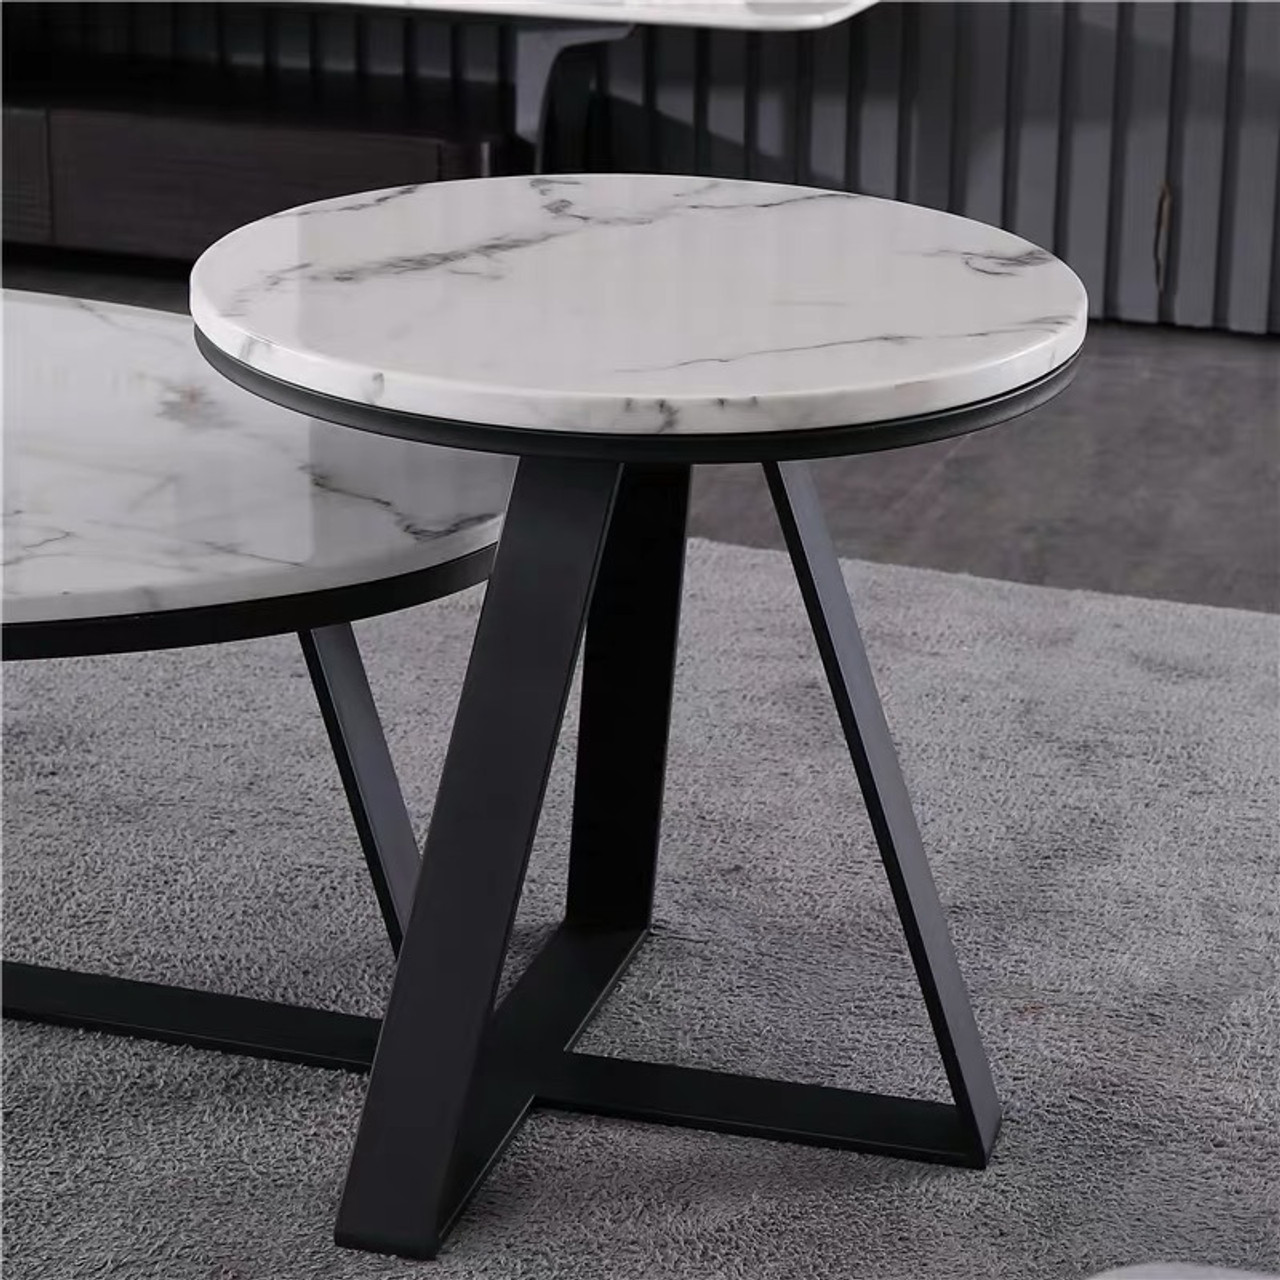 Brand New Natural Marble Coffee Table With Stainless Steel Legs Hallams Home